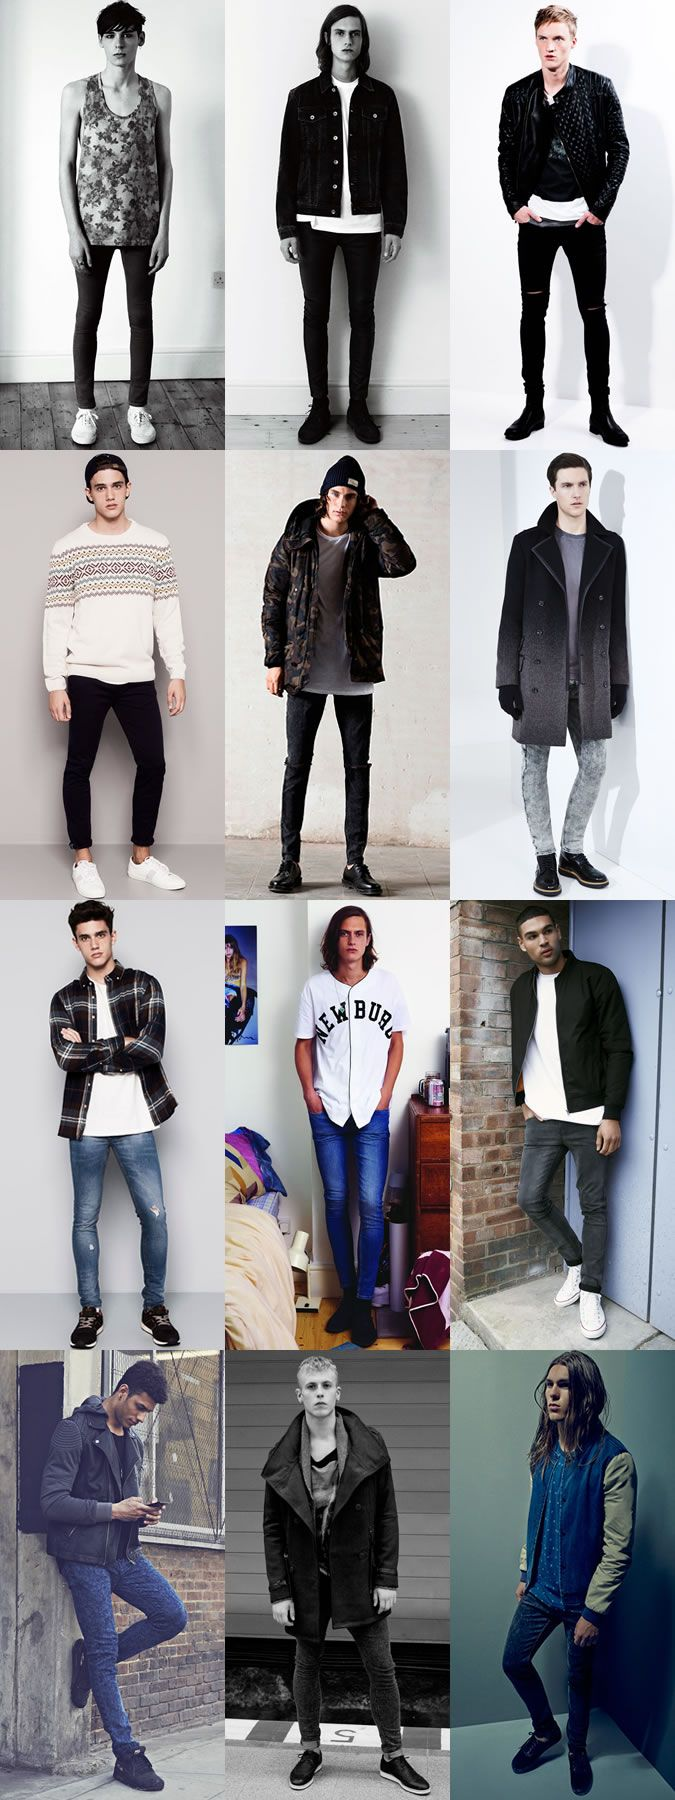 Men's Spray On Skinny Jeans Outfit Inspiration Lookbook